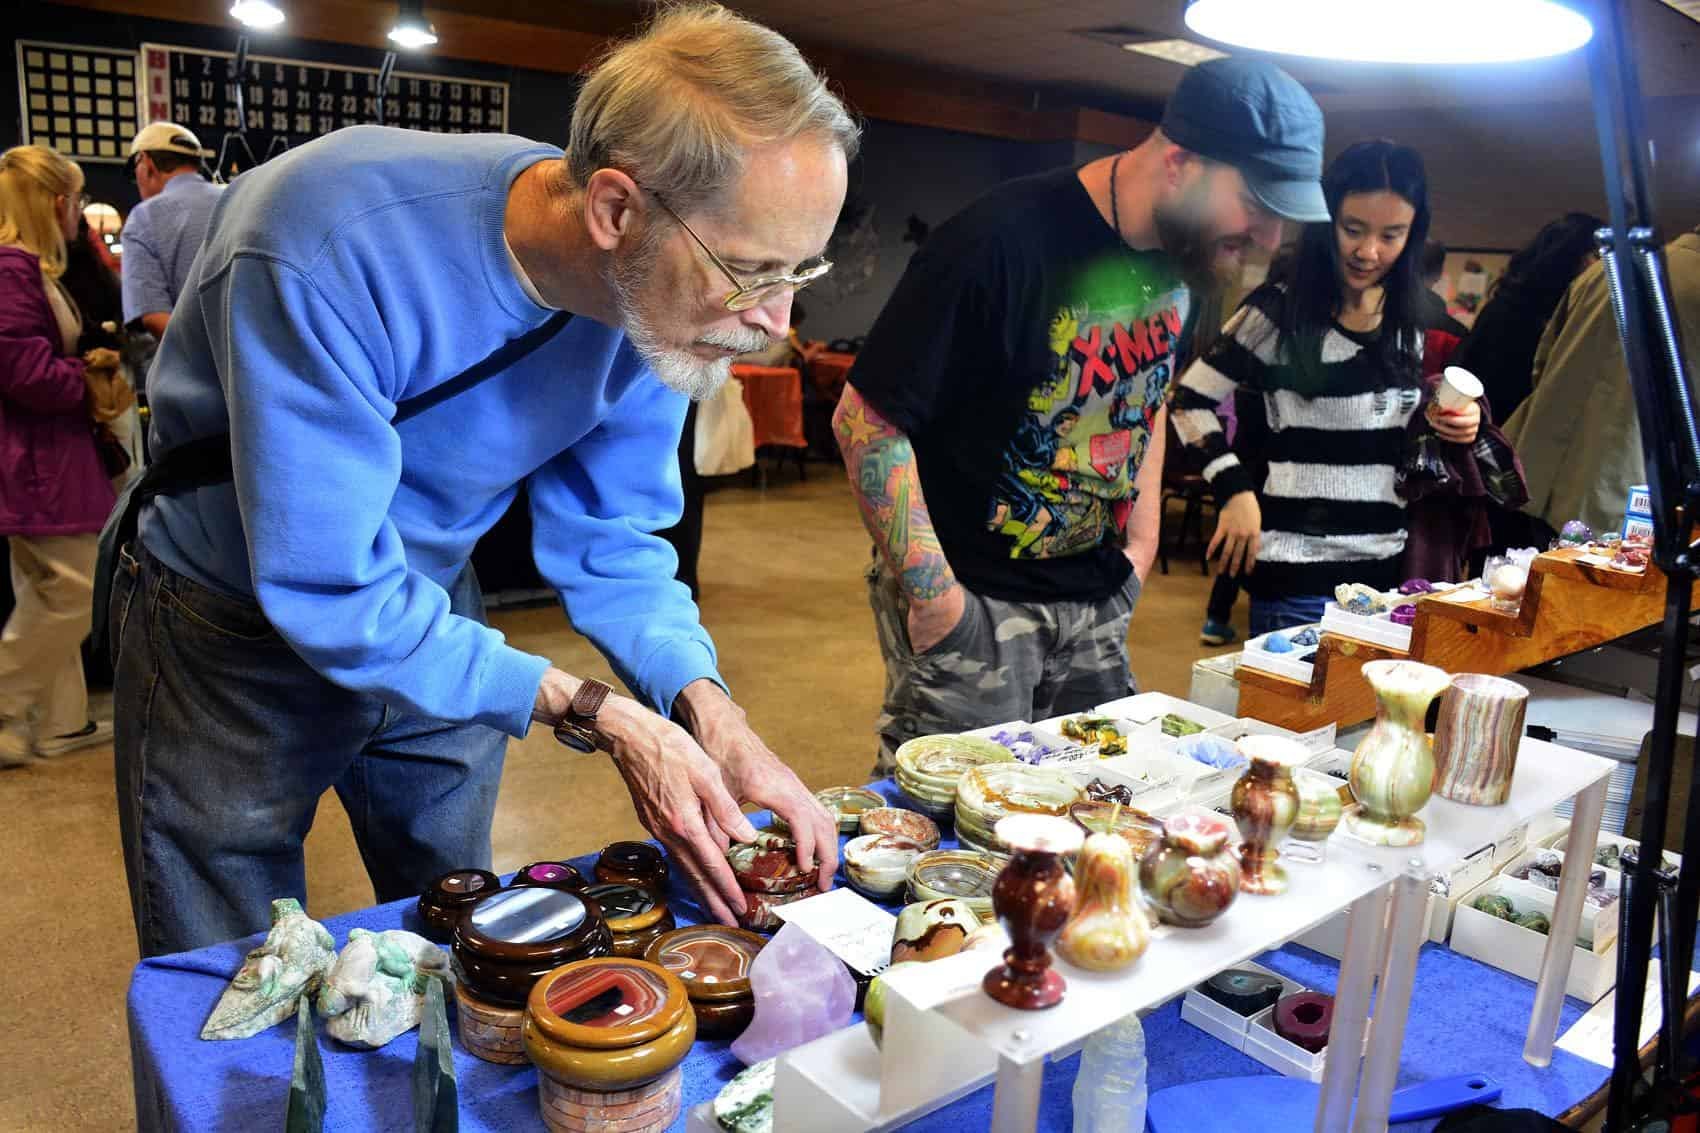 10/18/2014 Mike Orazzi | Staff John Hartshorn looks for items during the Bristol Gem & Mineral Club's 42nd Annual Gem & Mineral Show at the Bristol Senior Center on Saturday.